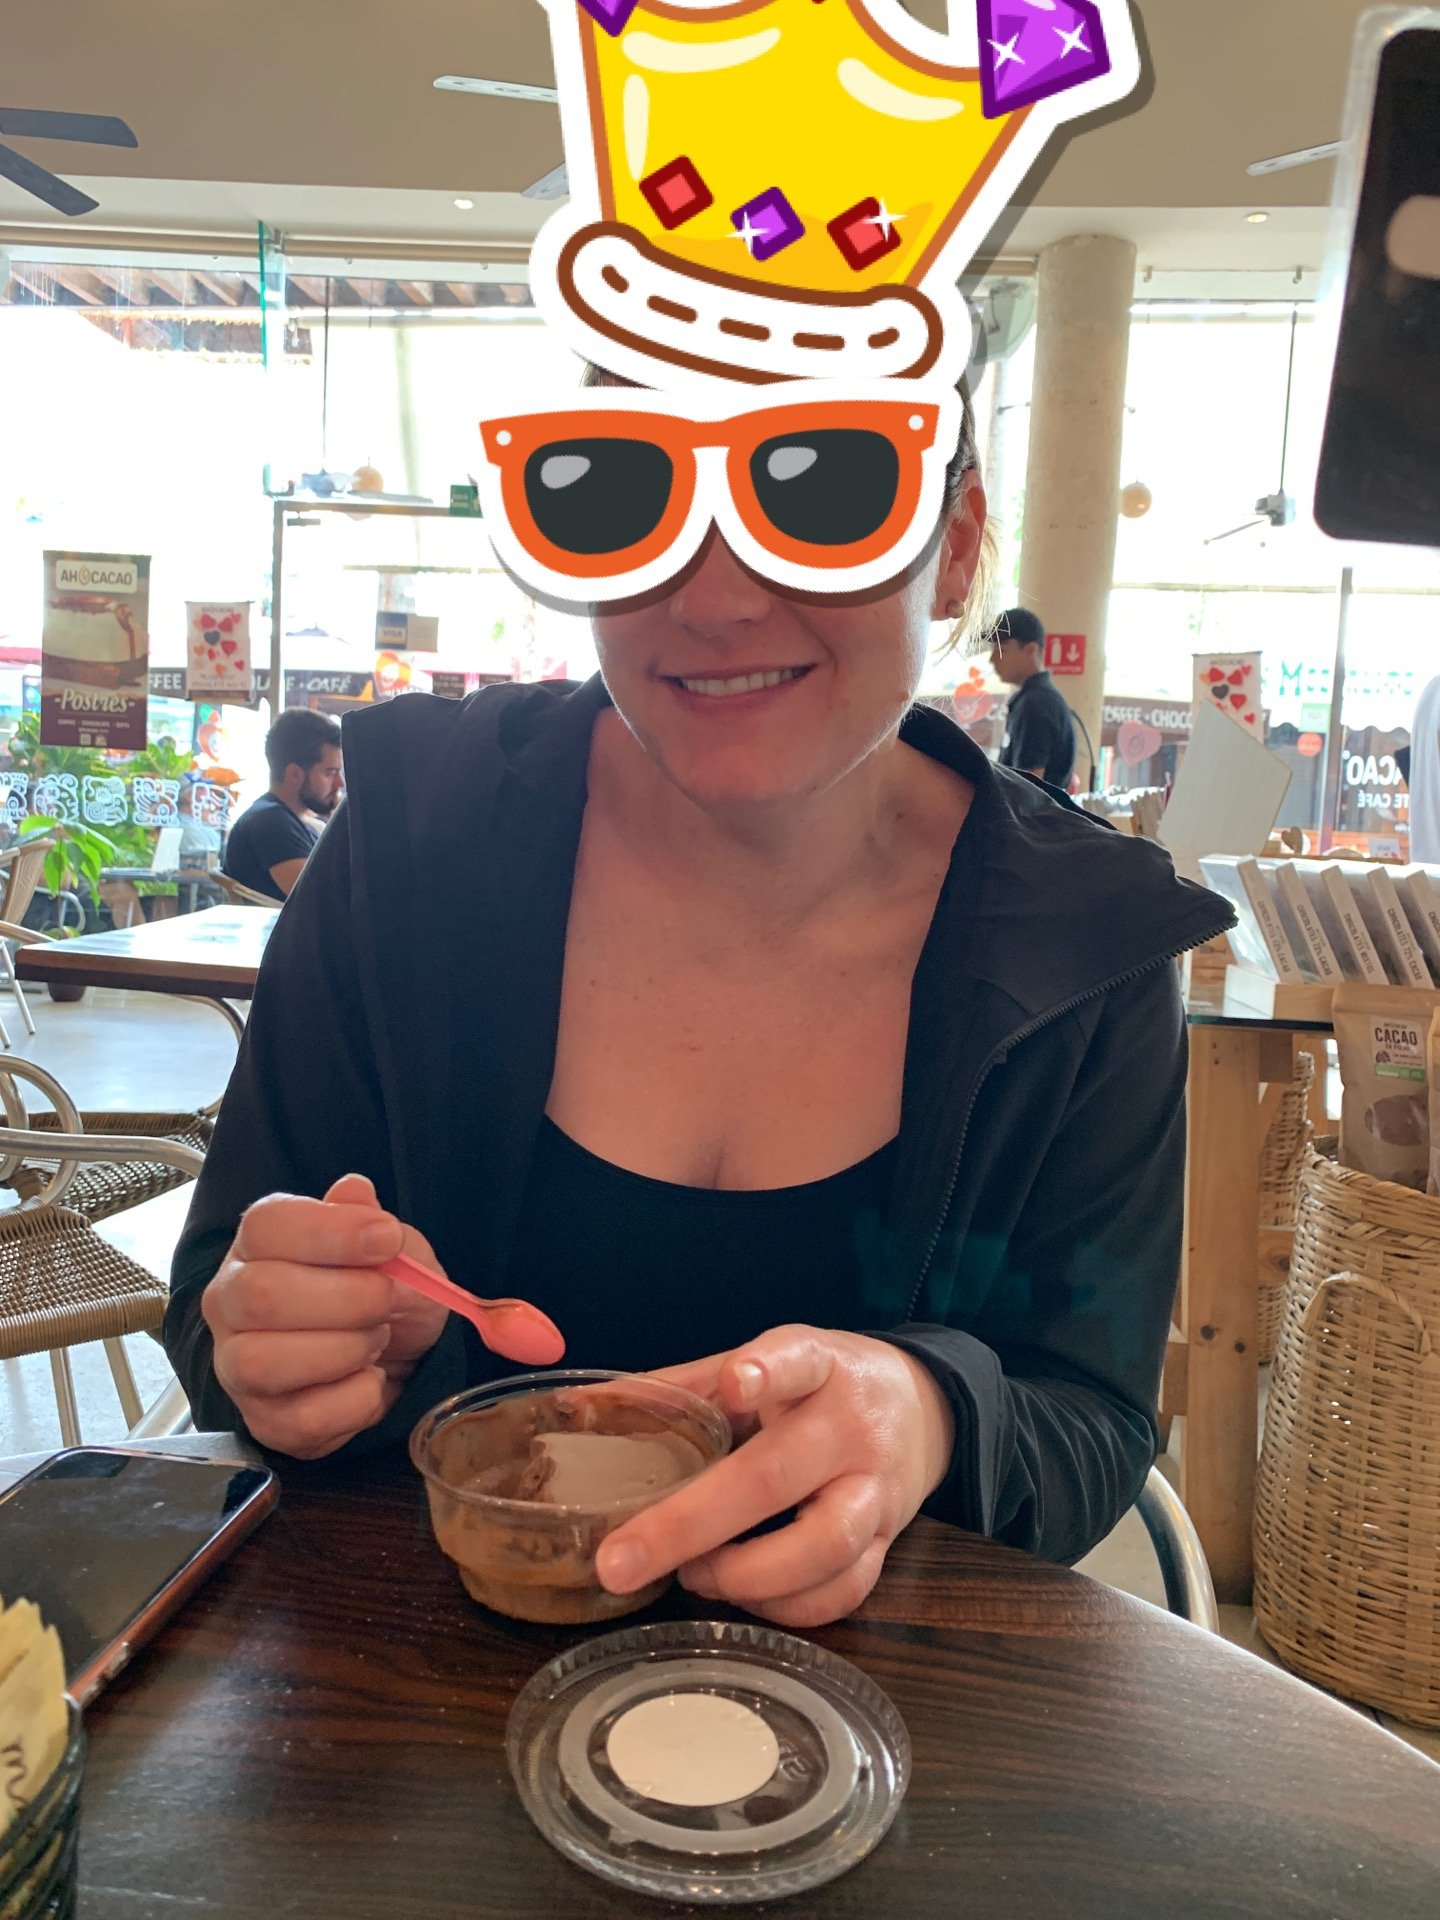 Checked in at Ah Cacao Chocolate Café